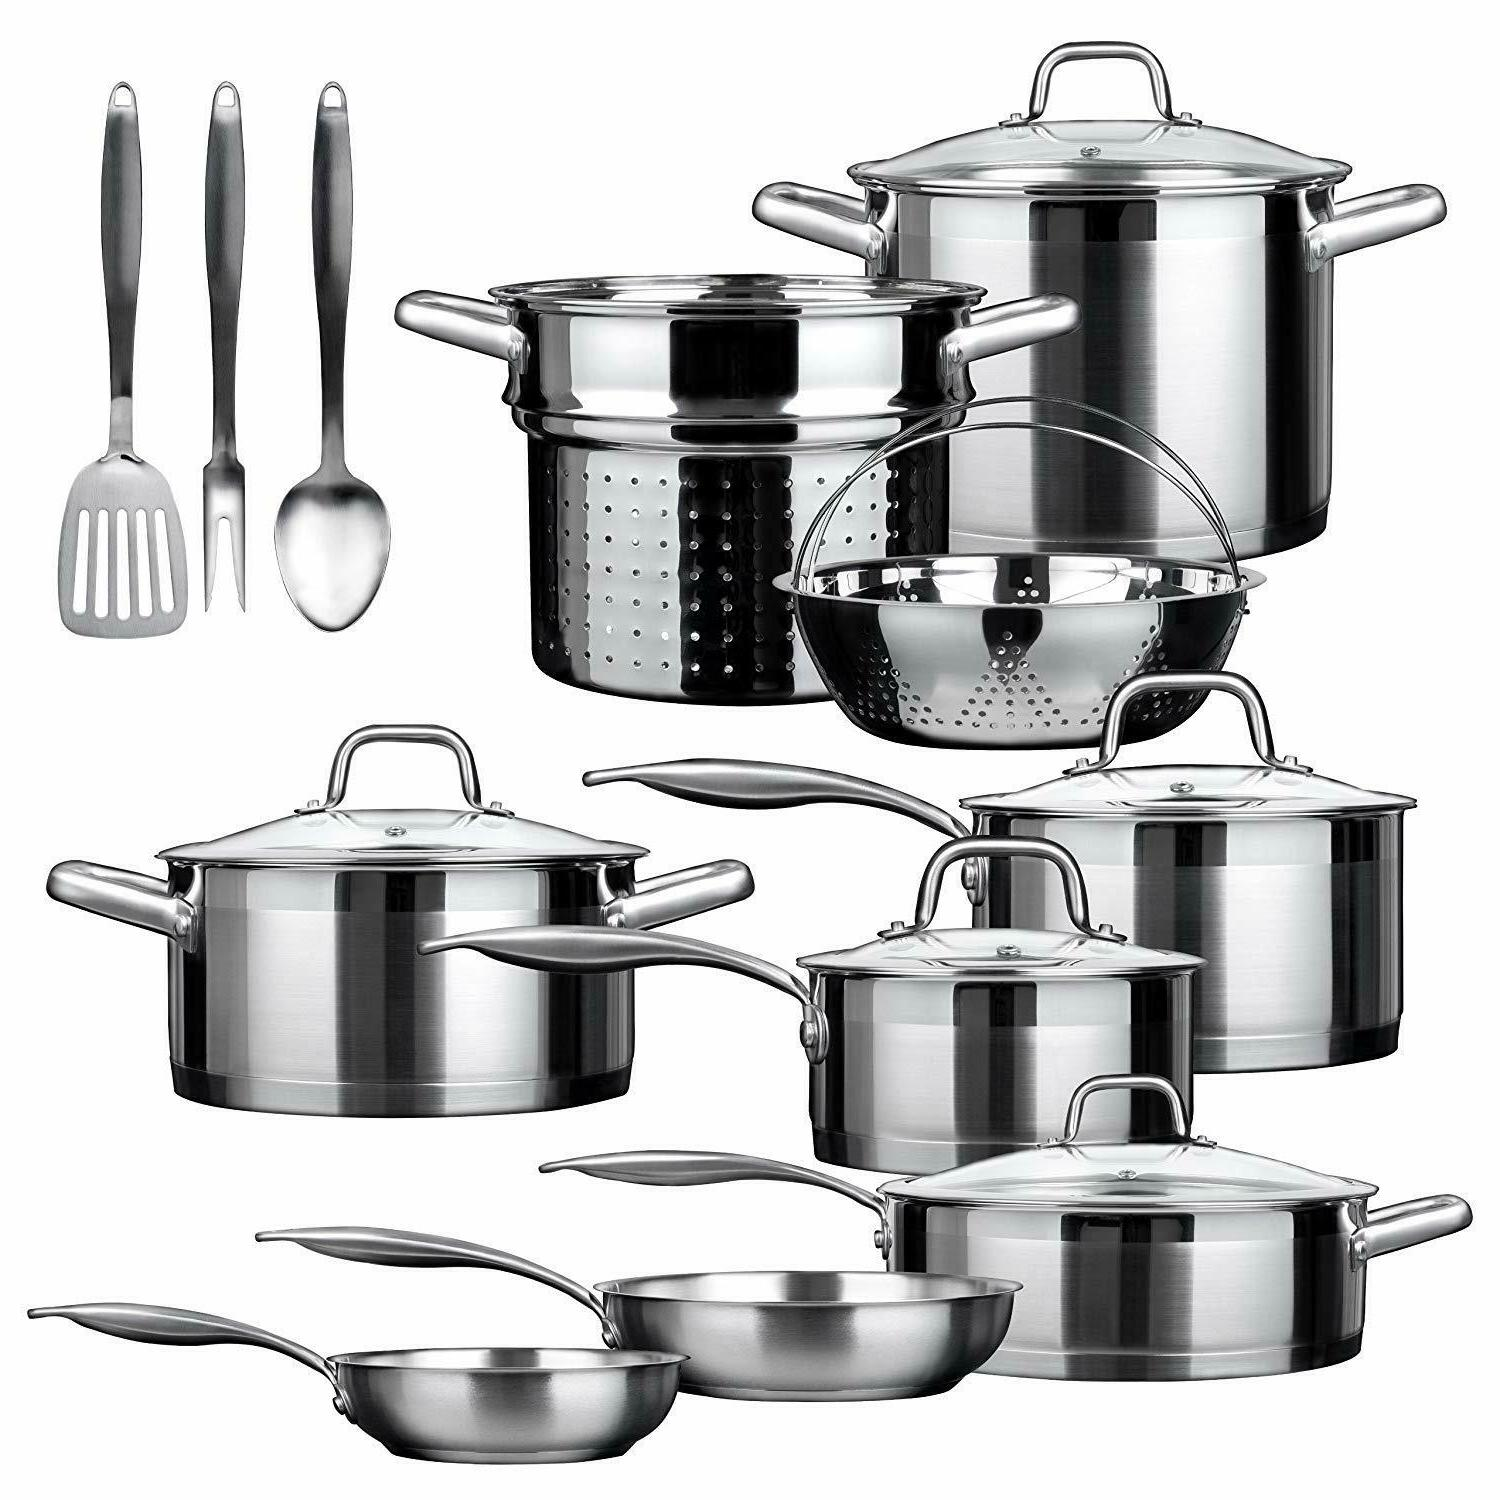 duxtop 17 piece stainless steel induction cookware